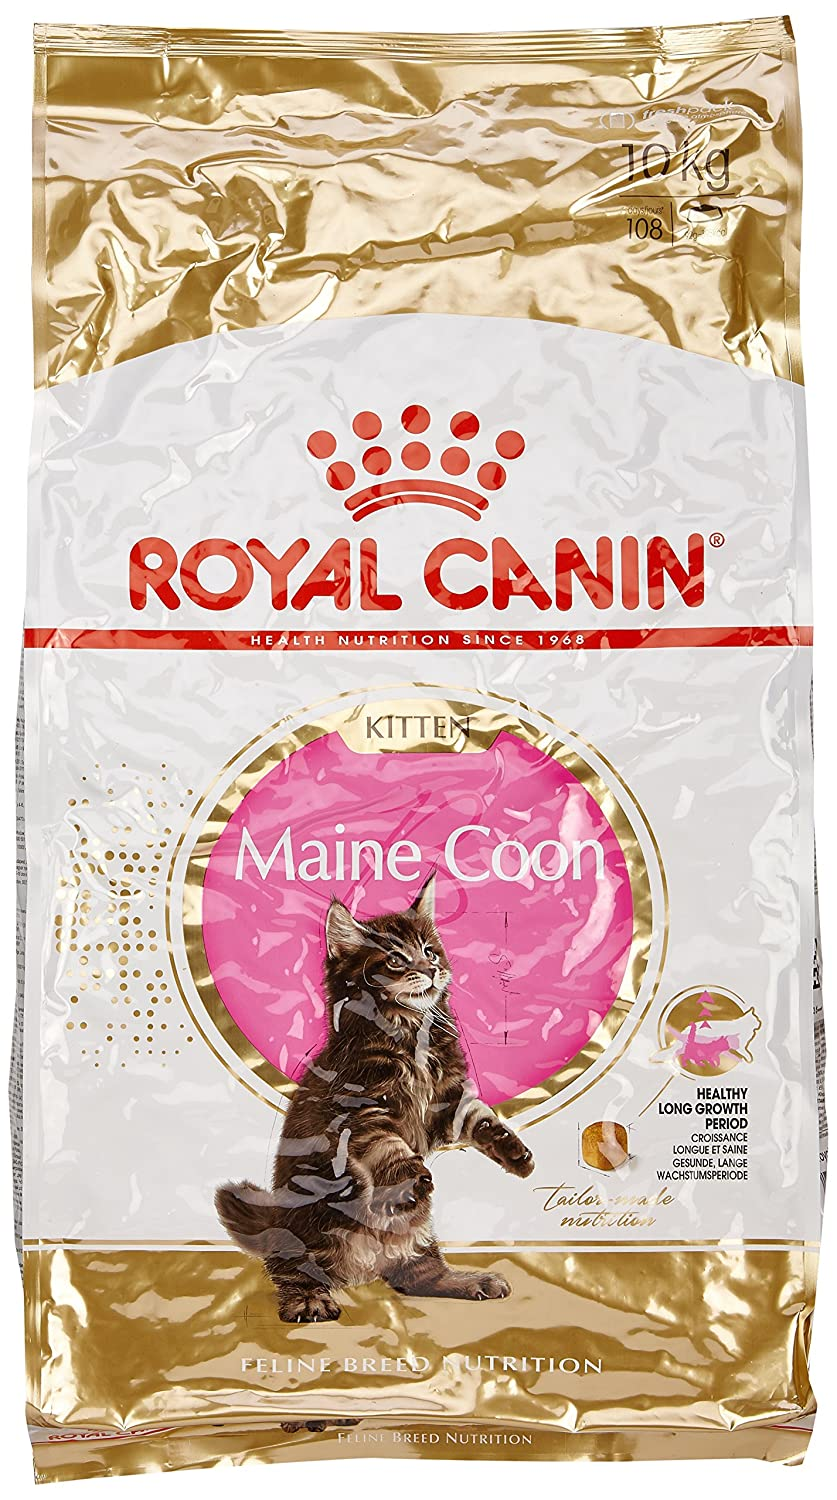 Royal Canin Kitten Maine Coon 4.0 kg 03RCMCK4